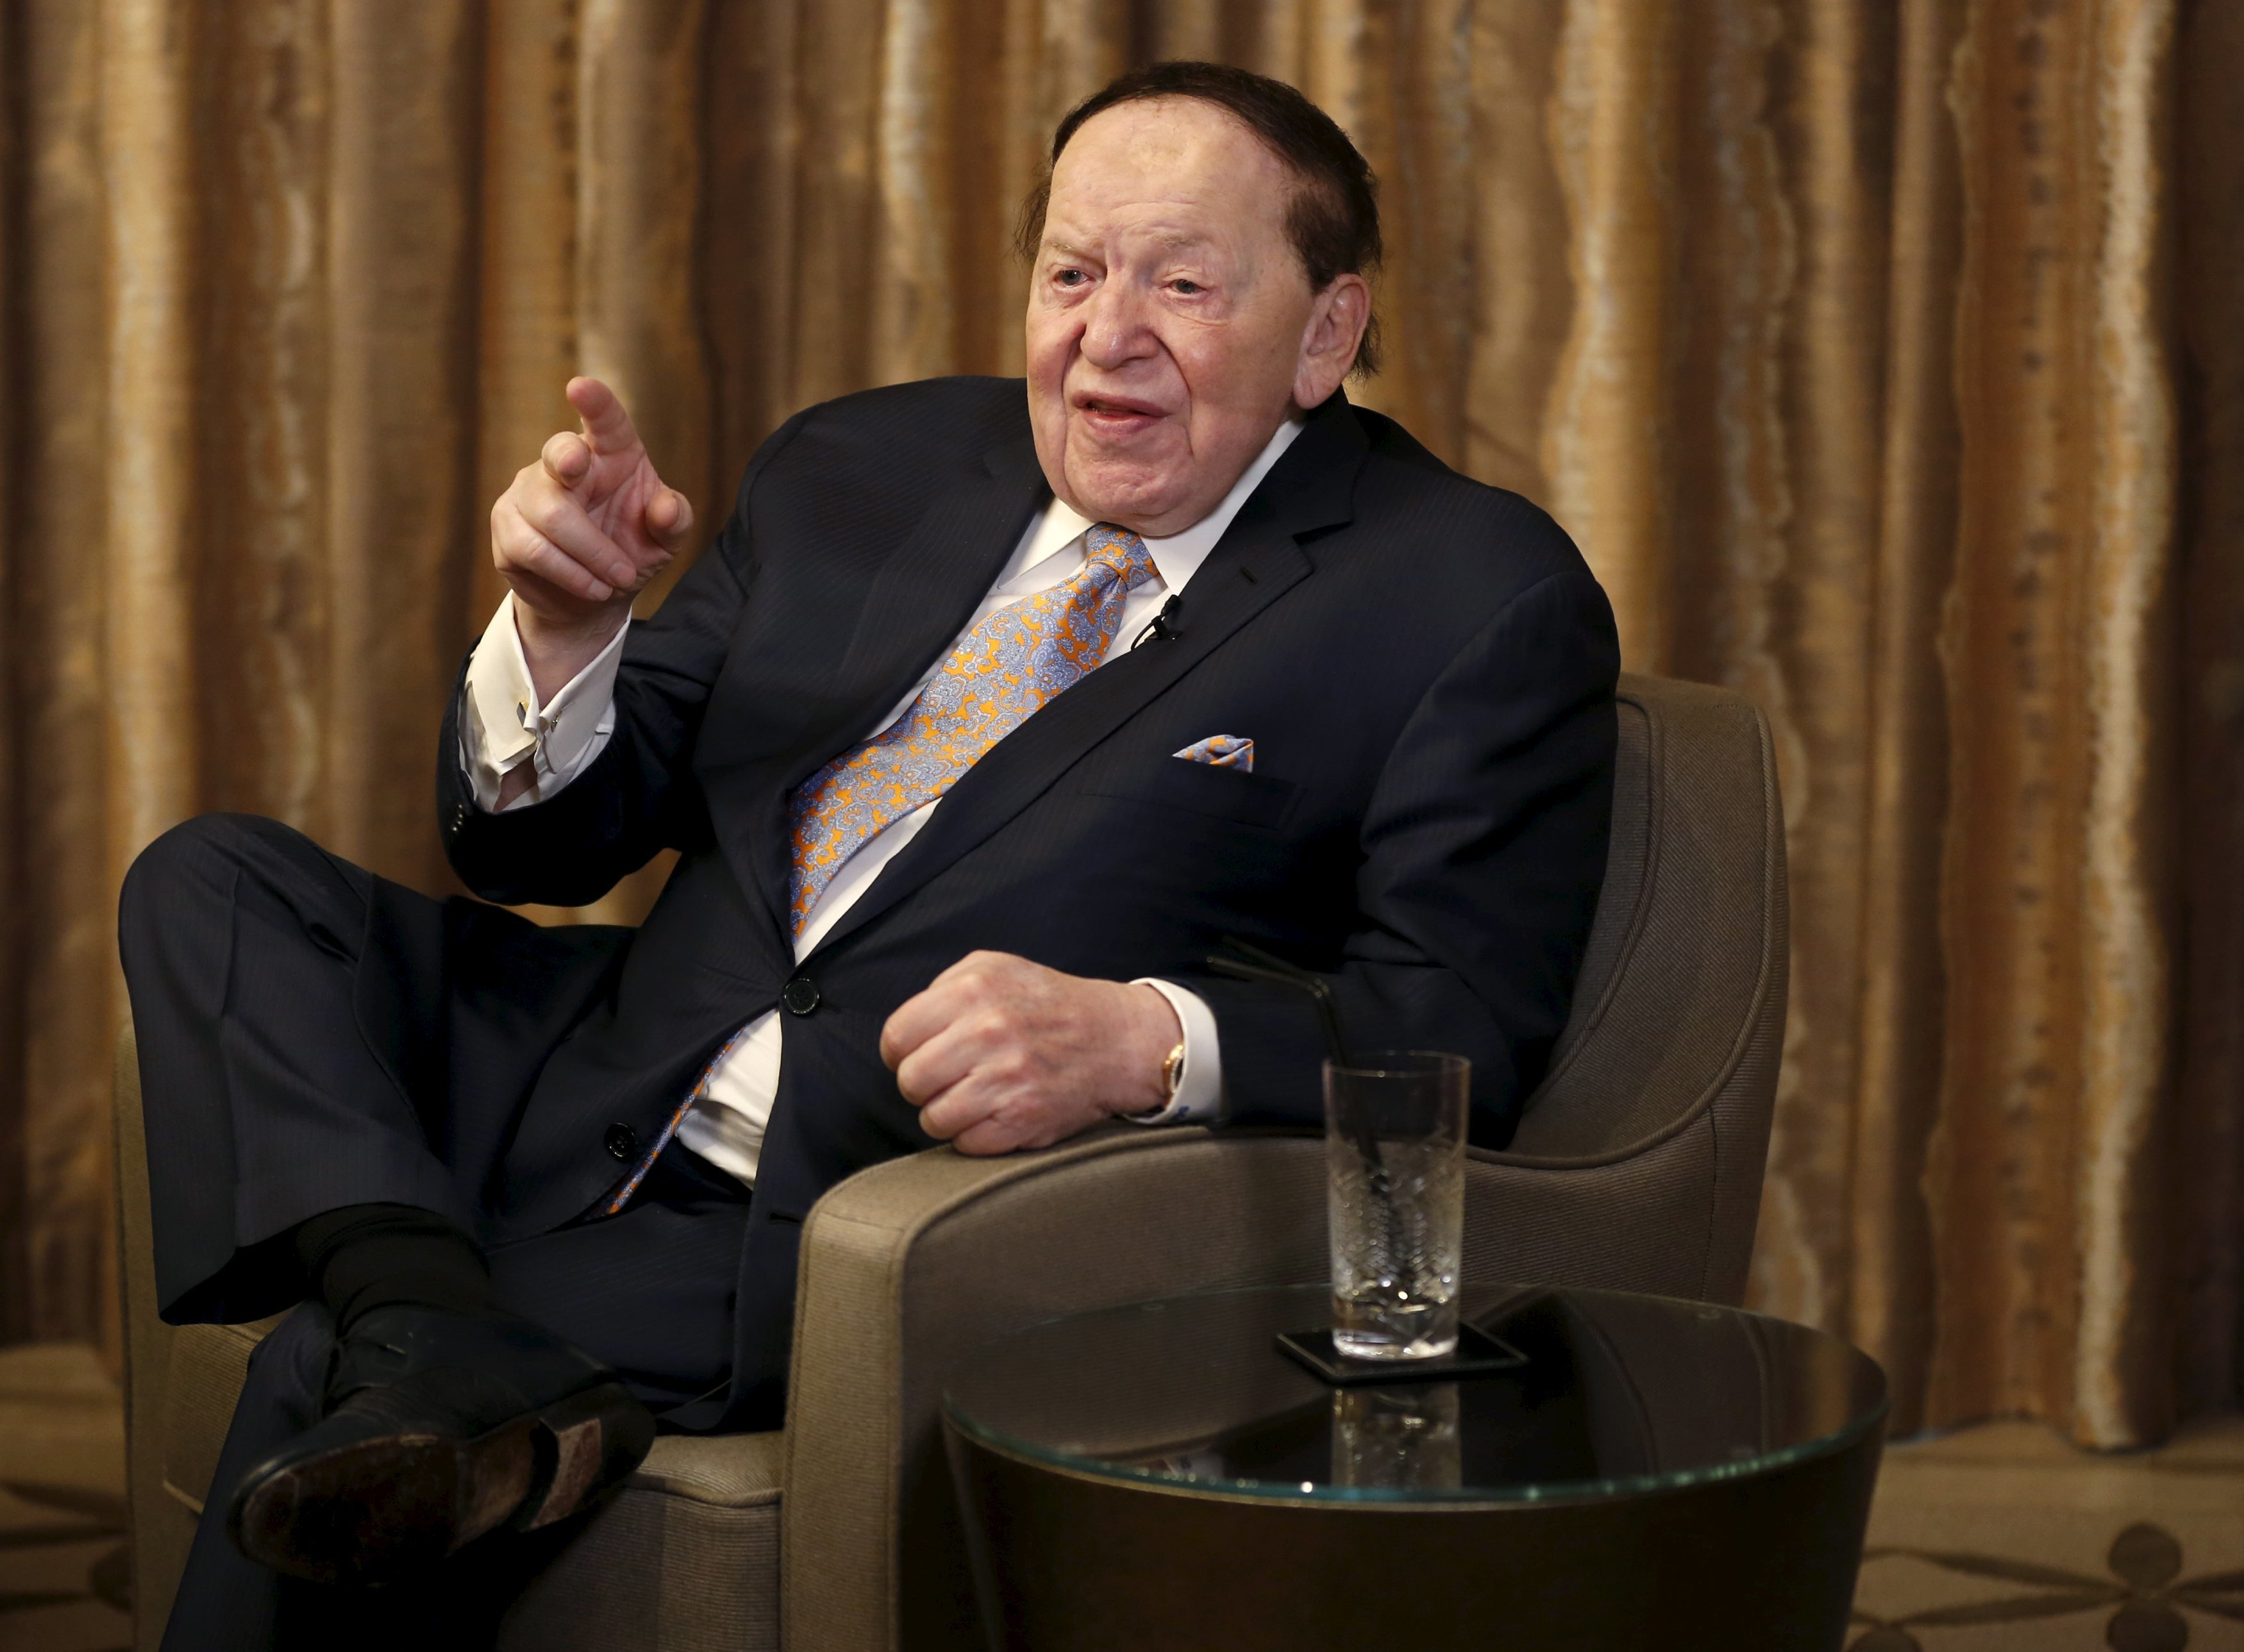 2015-12-18t100259z_1_lynxmpebbh0jf_rtroptp_4_usa-election-adelson-trump